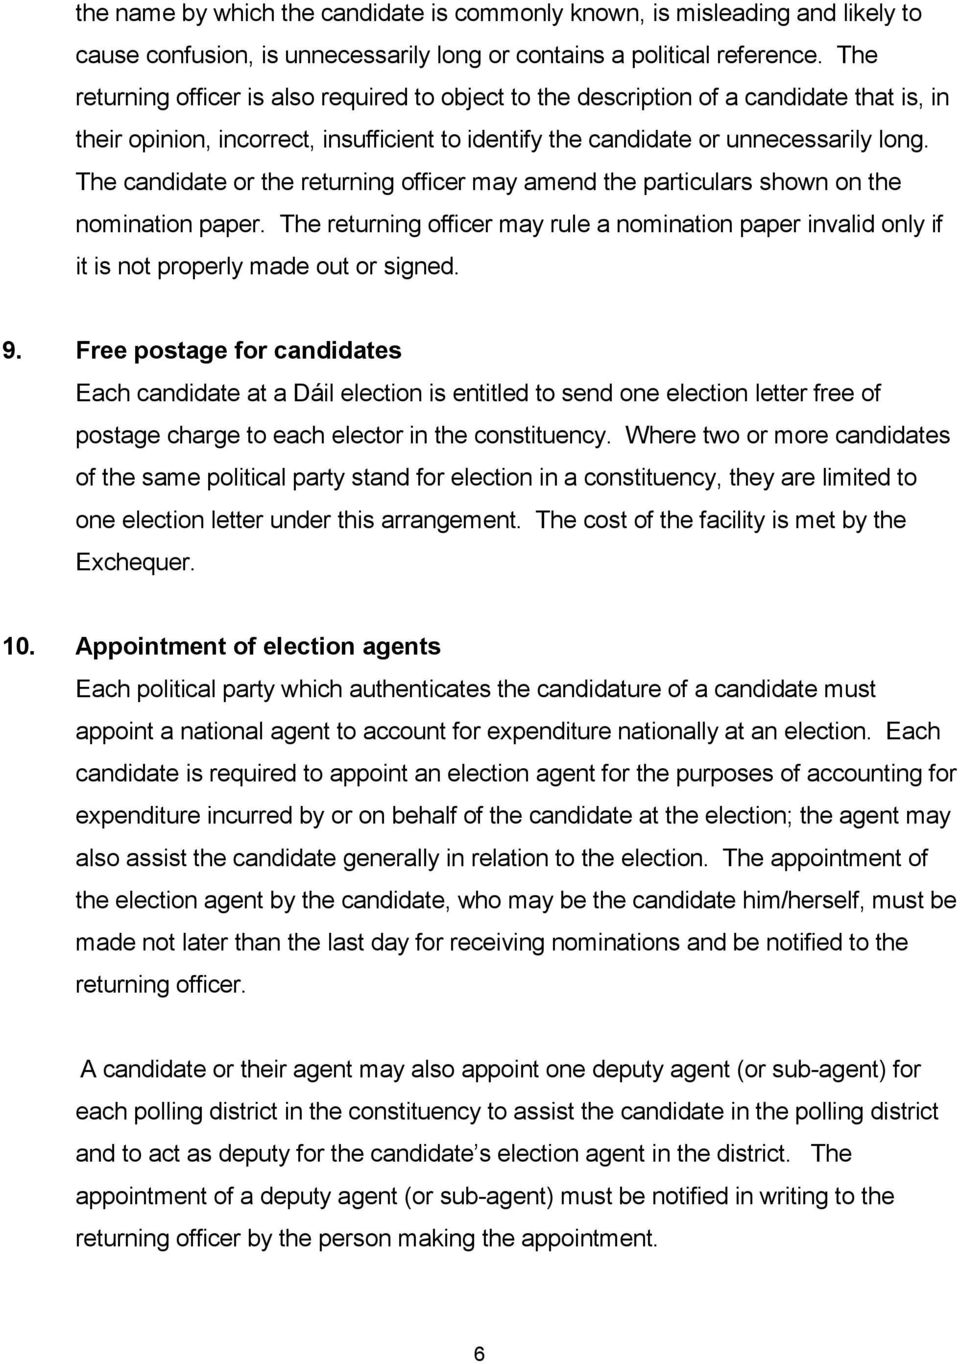 The candidate or the returning officer may amend the particulars shown on the nomination paper. The returning officer may rule a nomination paper invalid only if it is not properly made out or signed.